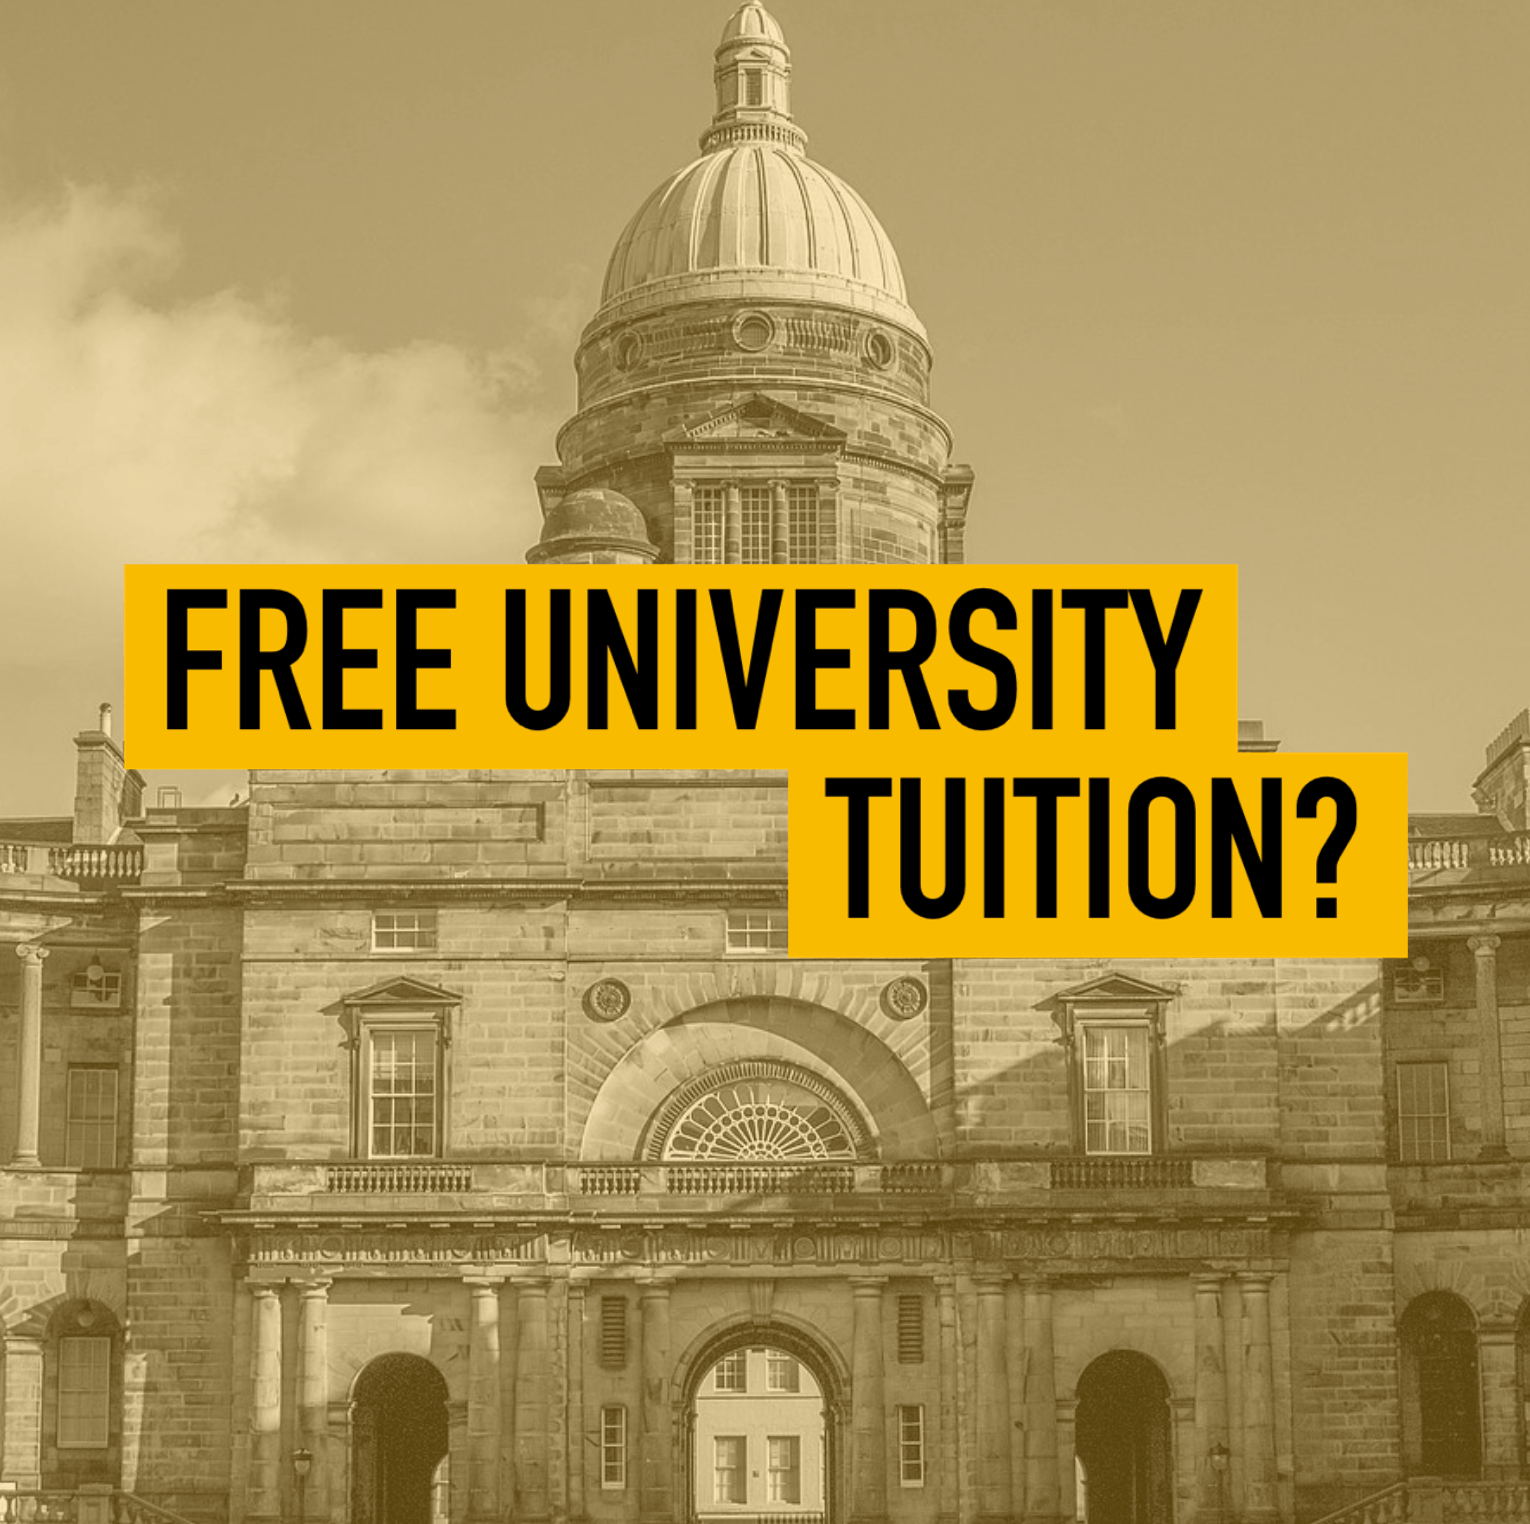 Should University Be Free To All?